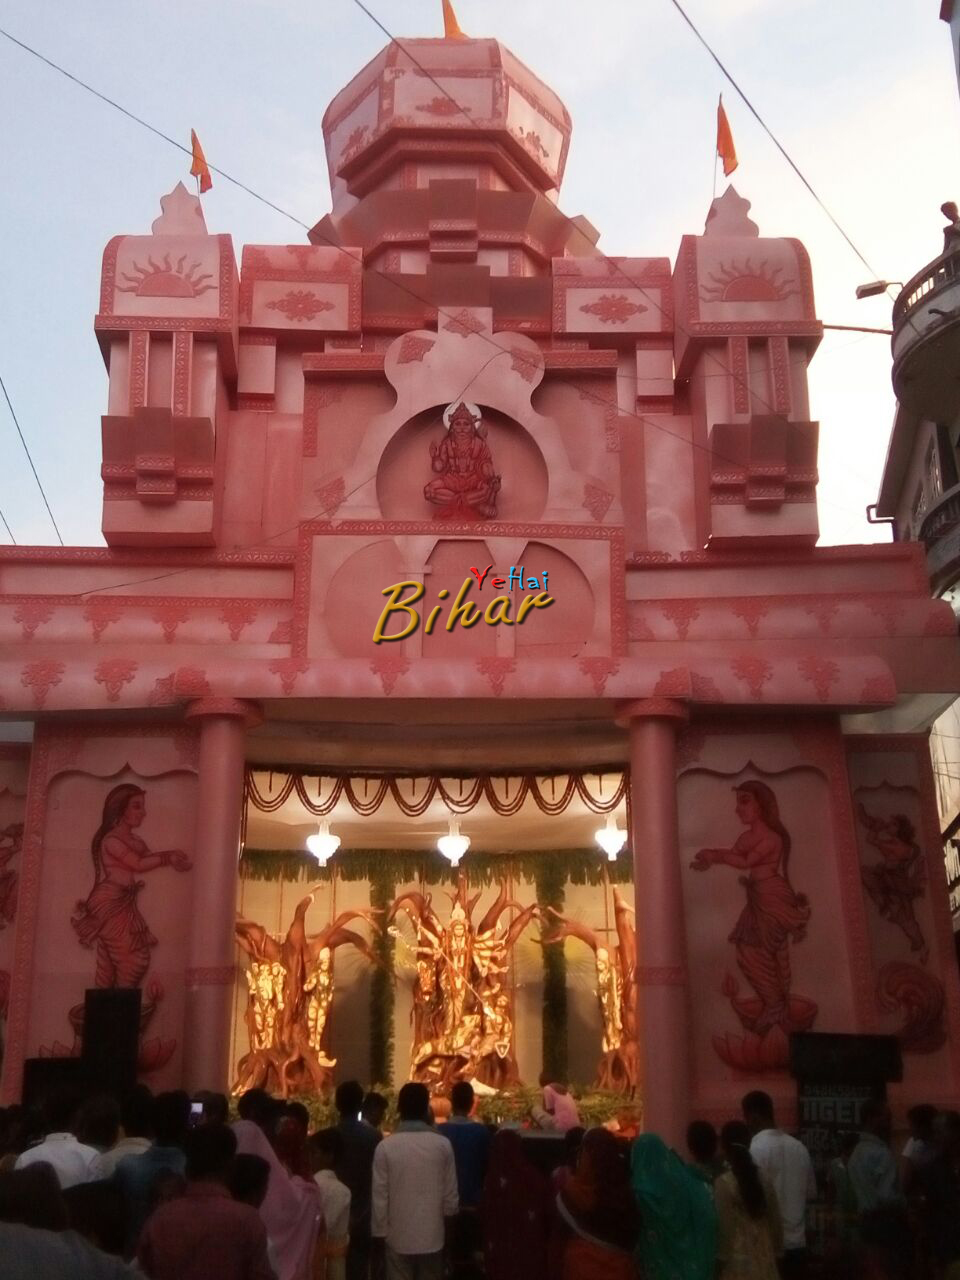 Beautiful durga puja images from sitamarhi bihar beautiful durga puja images from sitamadhi bihar thecheapjerseys Images